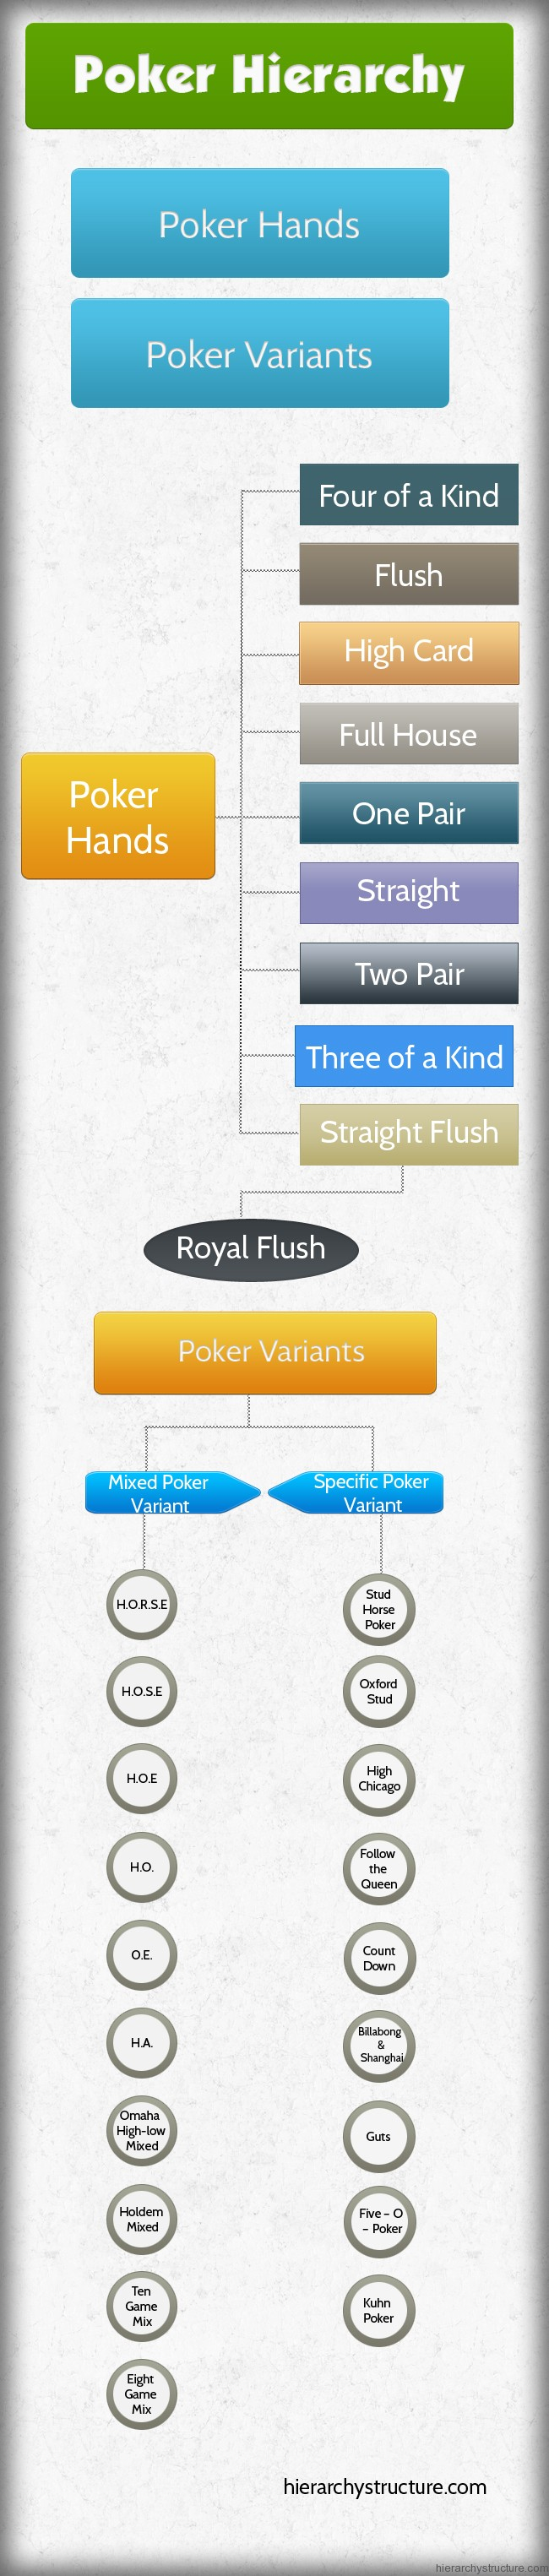 Poker Hierarchy